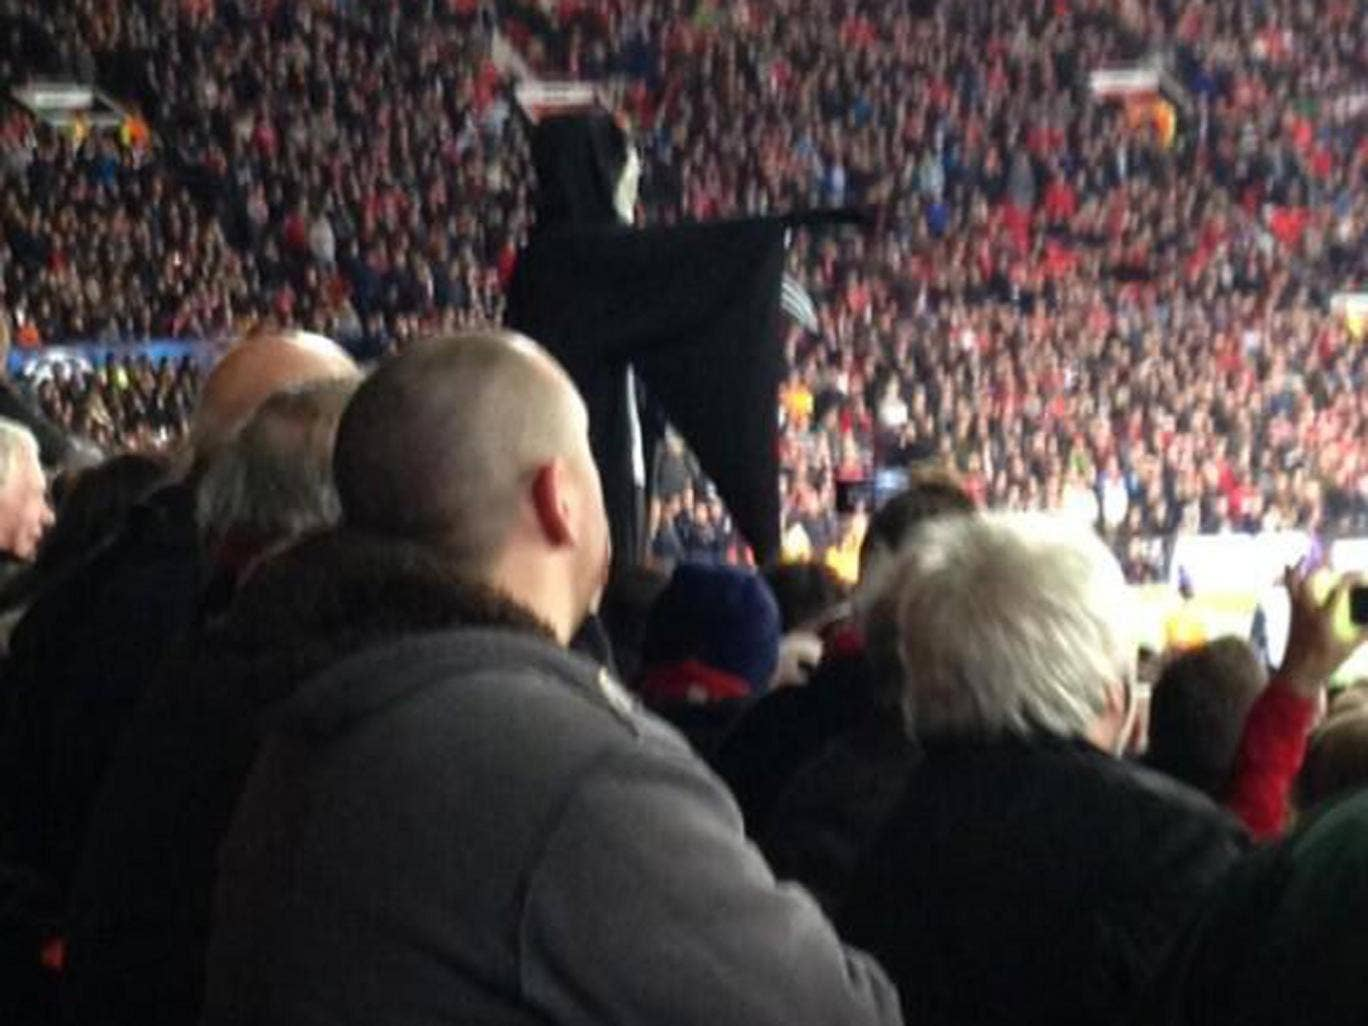 "A fan dressed up as the Grim Reaper during Manchester United's win over Olympiakos, shouting at David Moyes ""Moyes, I'm coming to get you!"""